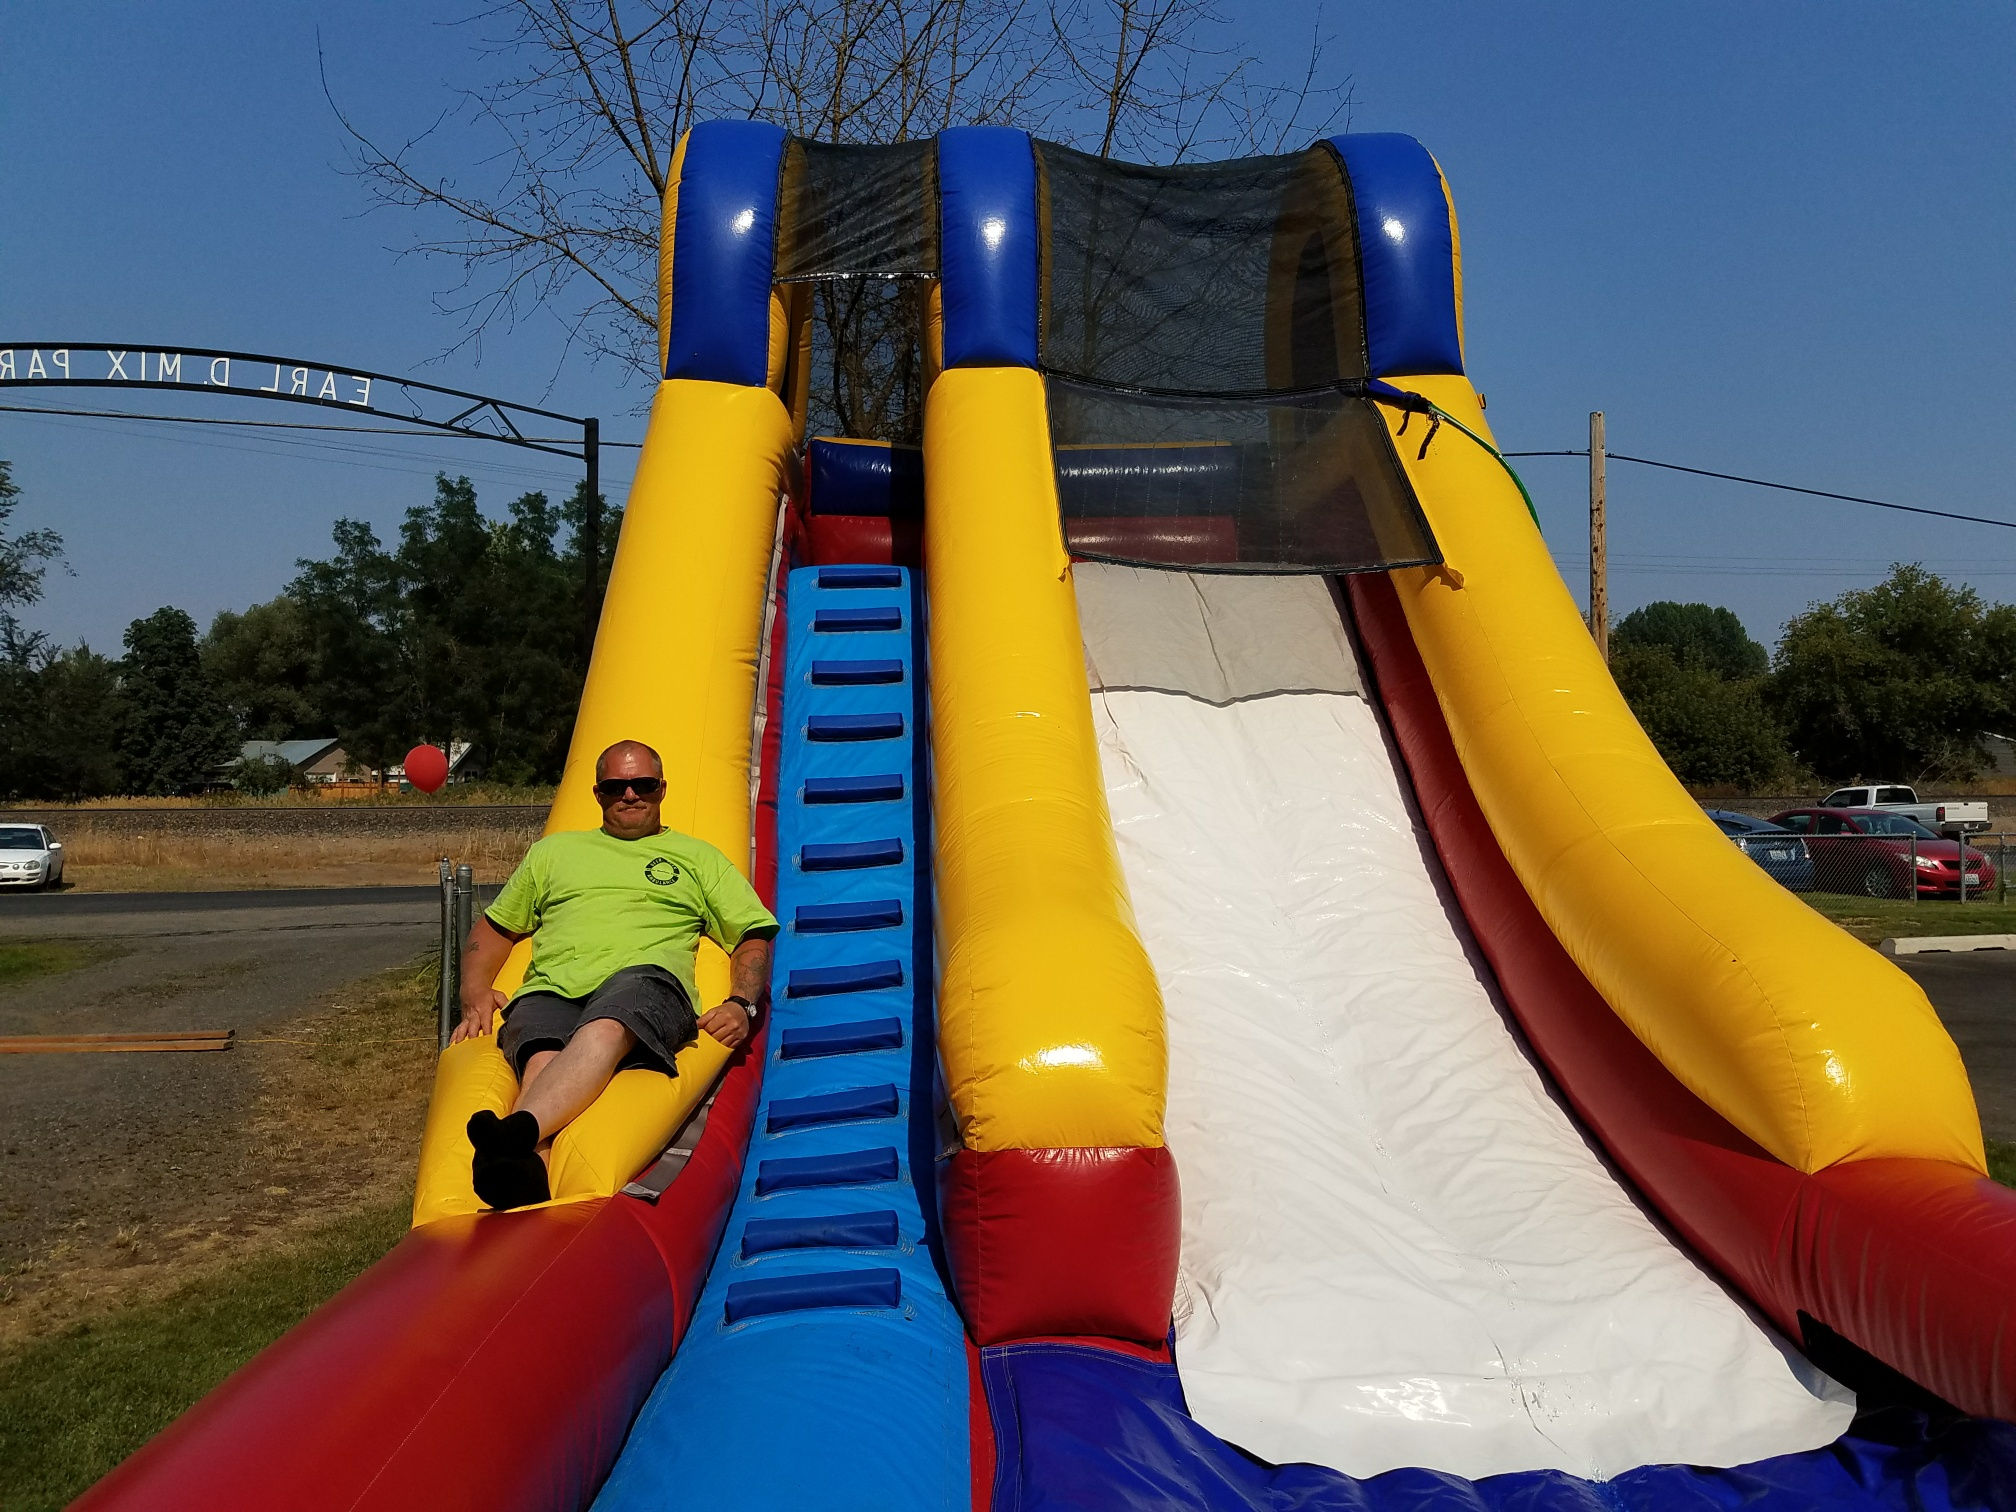 Fun for Kids - Activities, Carnival games, and Demonstrations